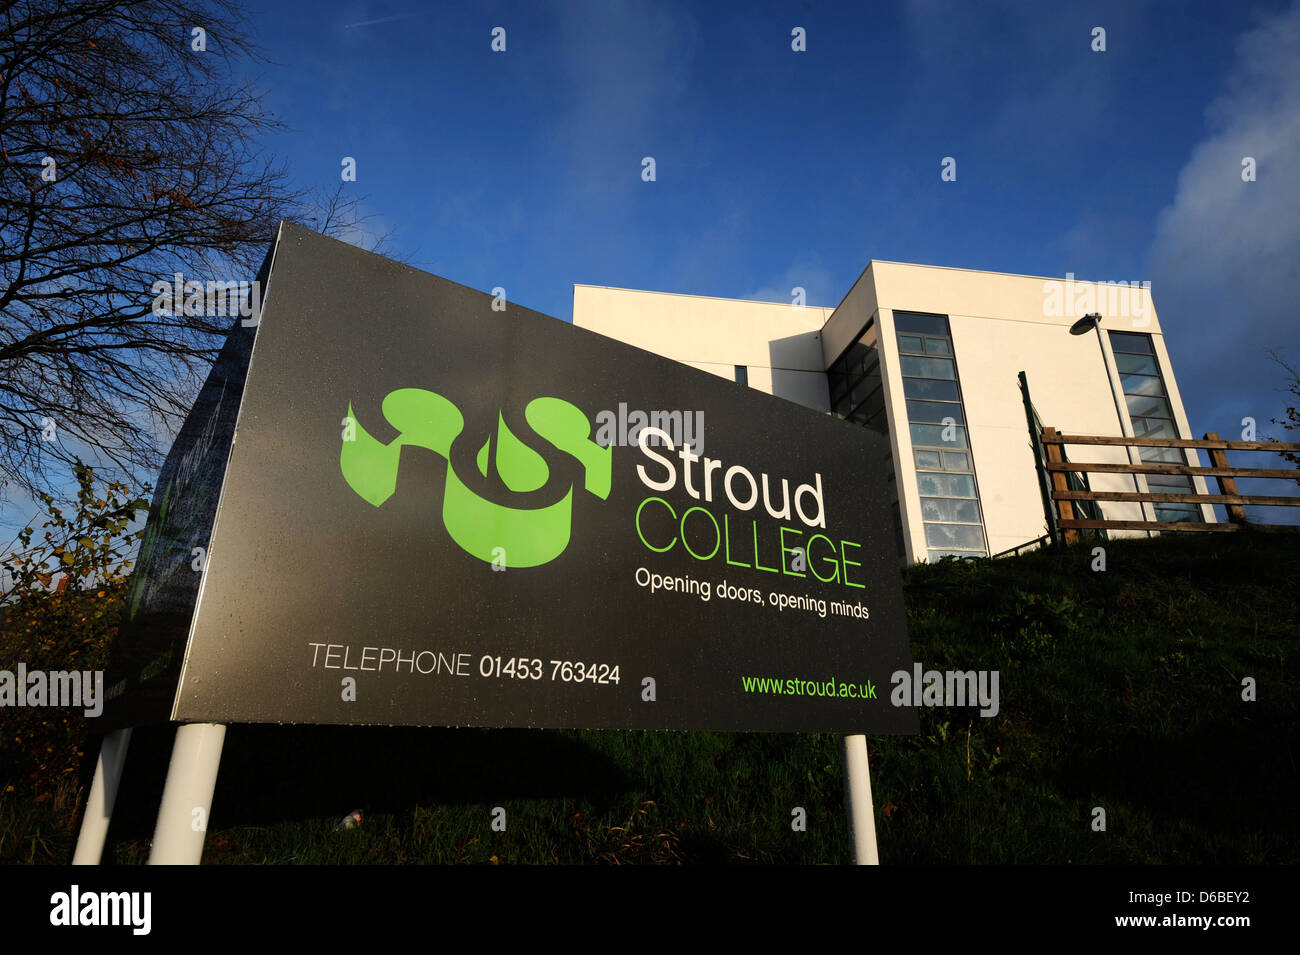 General views of Stroud College, Gloucestershire UK Stock Photo